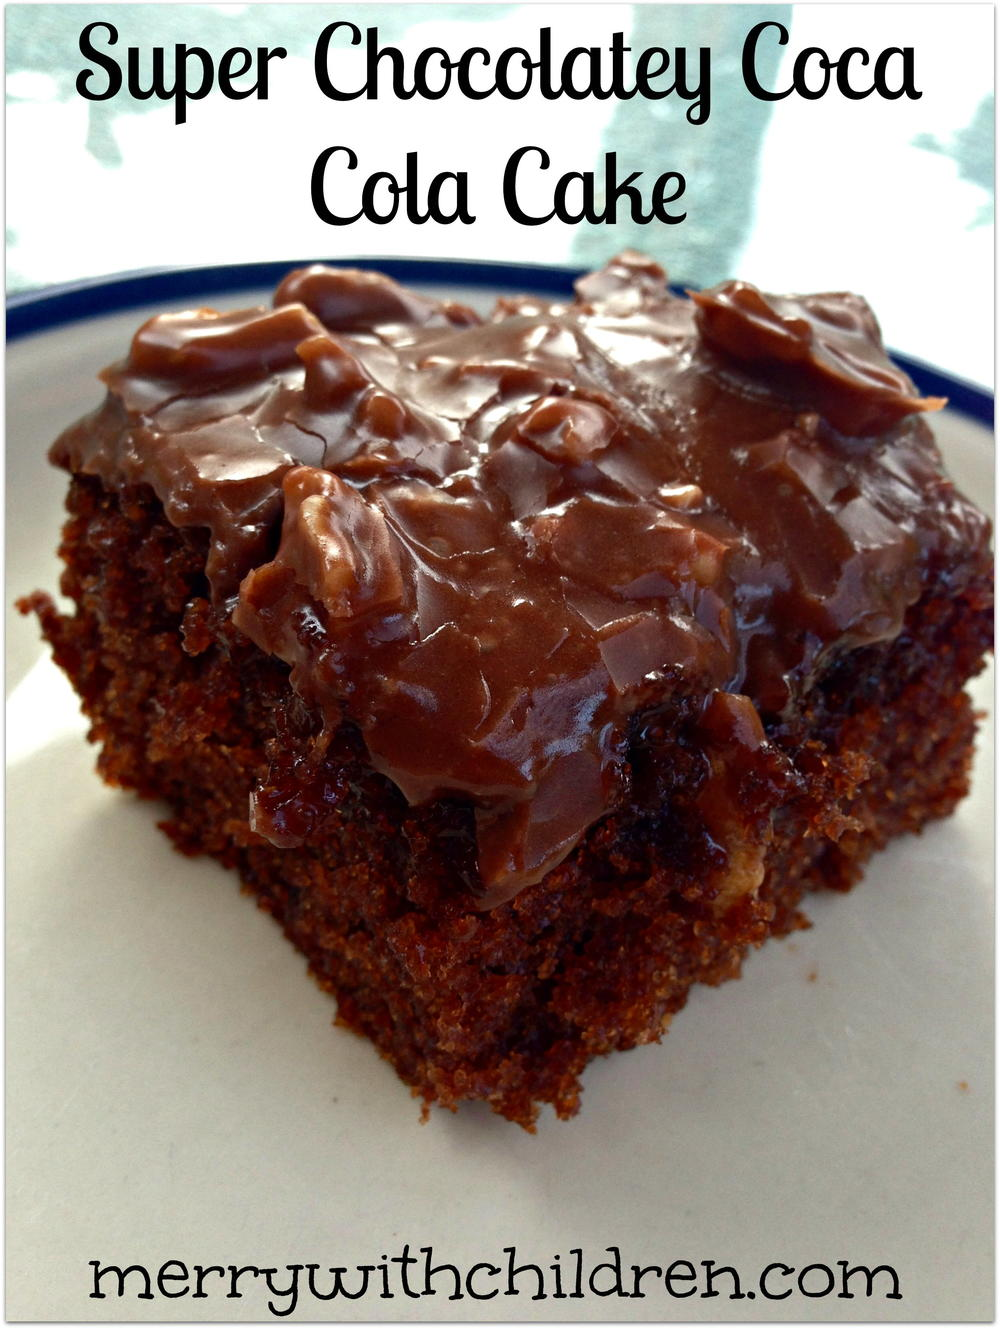 Super Chocolatey Coca Cola Cake Favesouthernrecipes Com